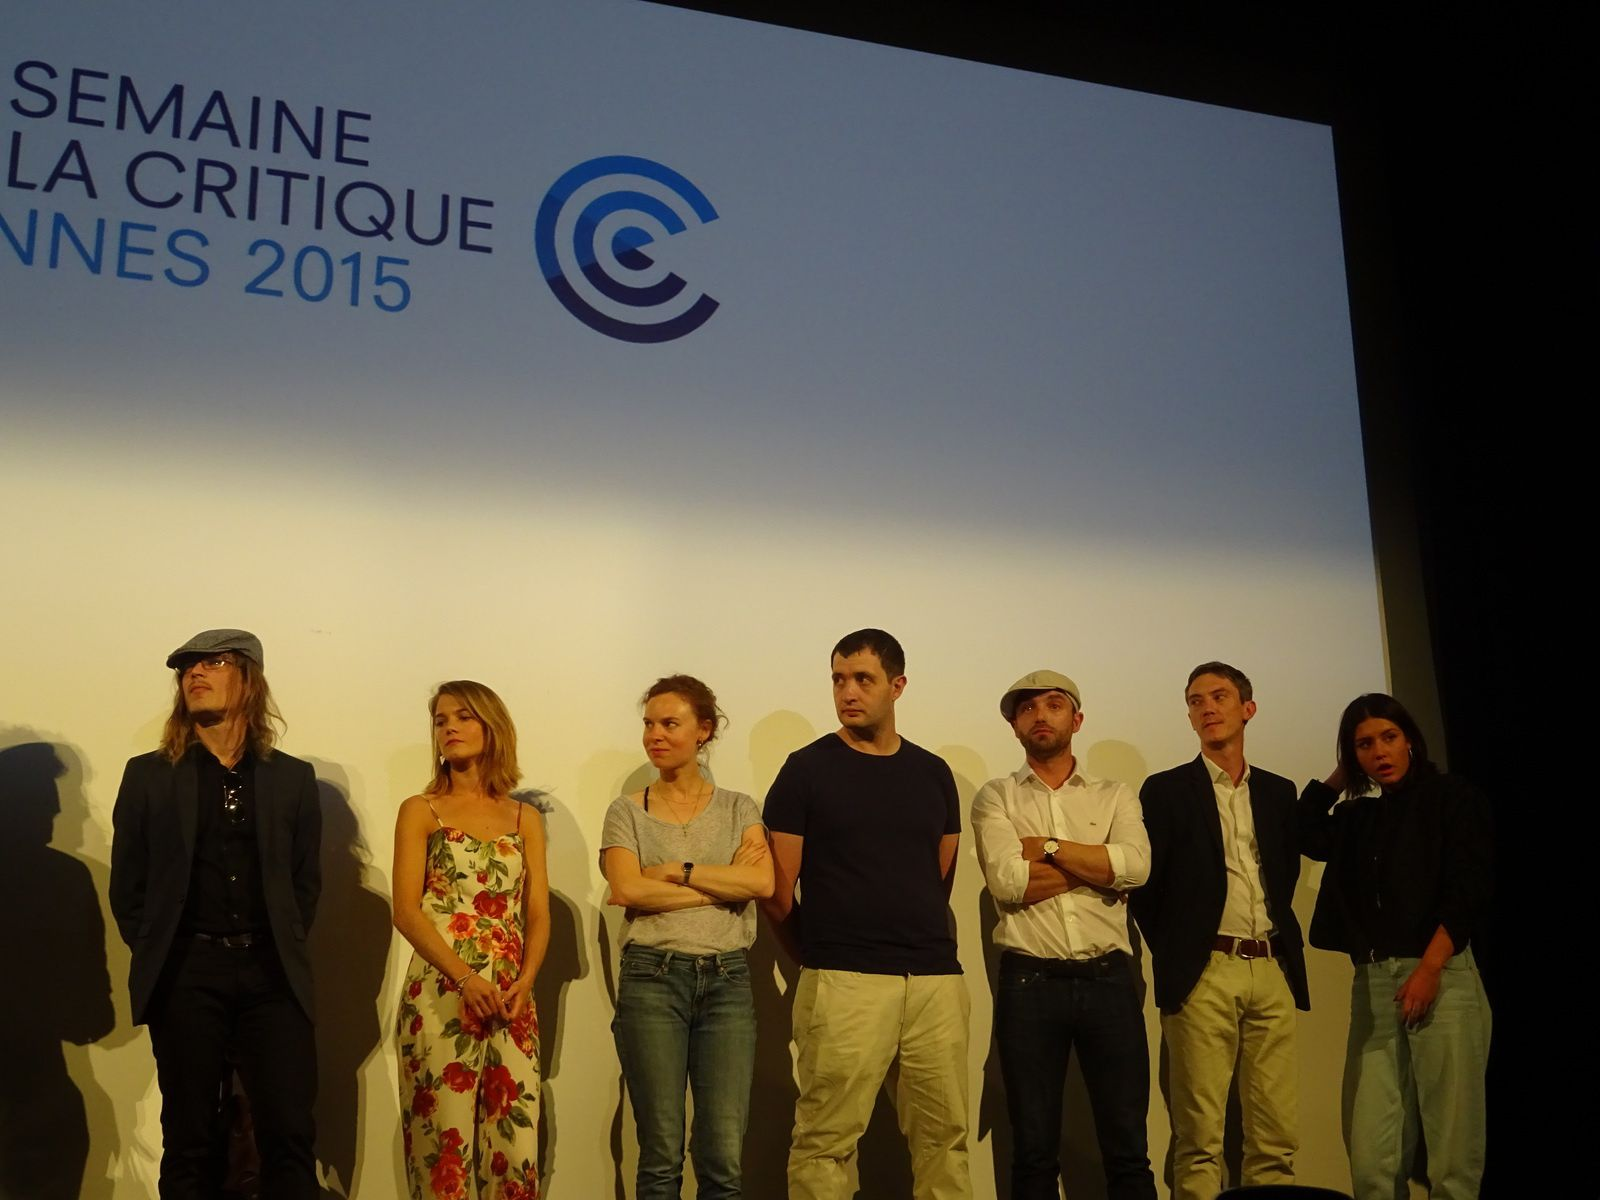 festival de cannes critique